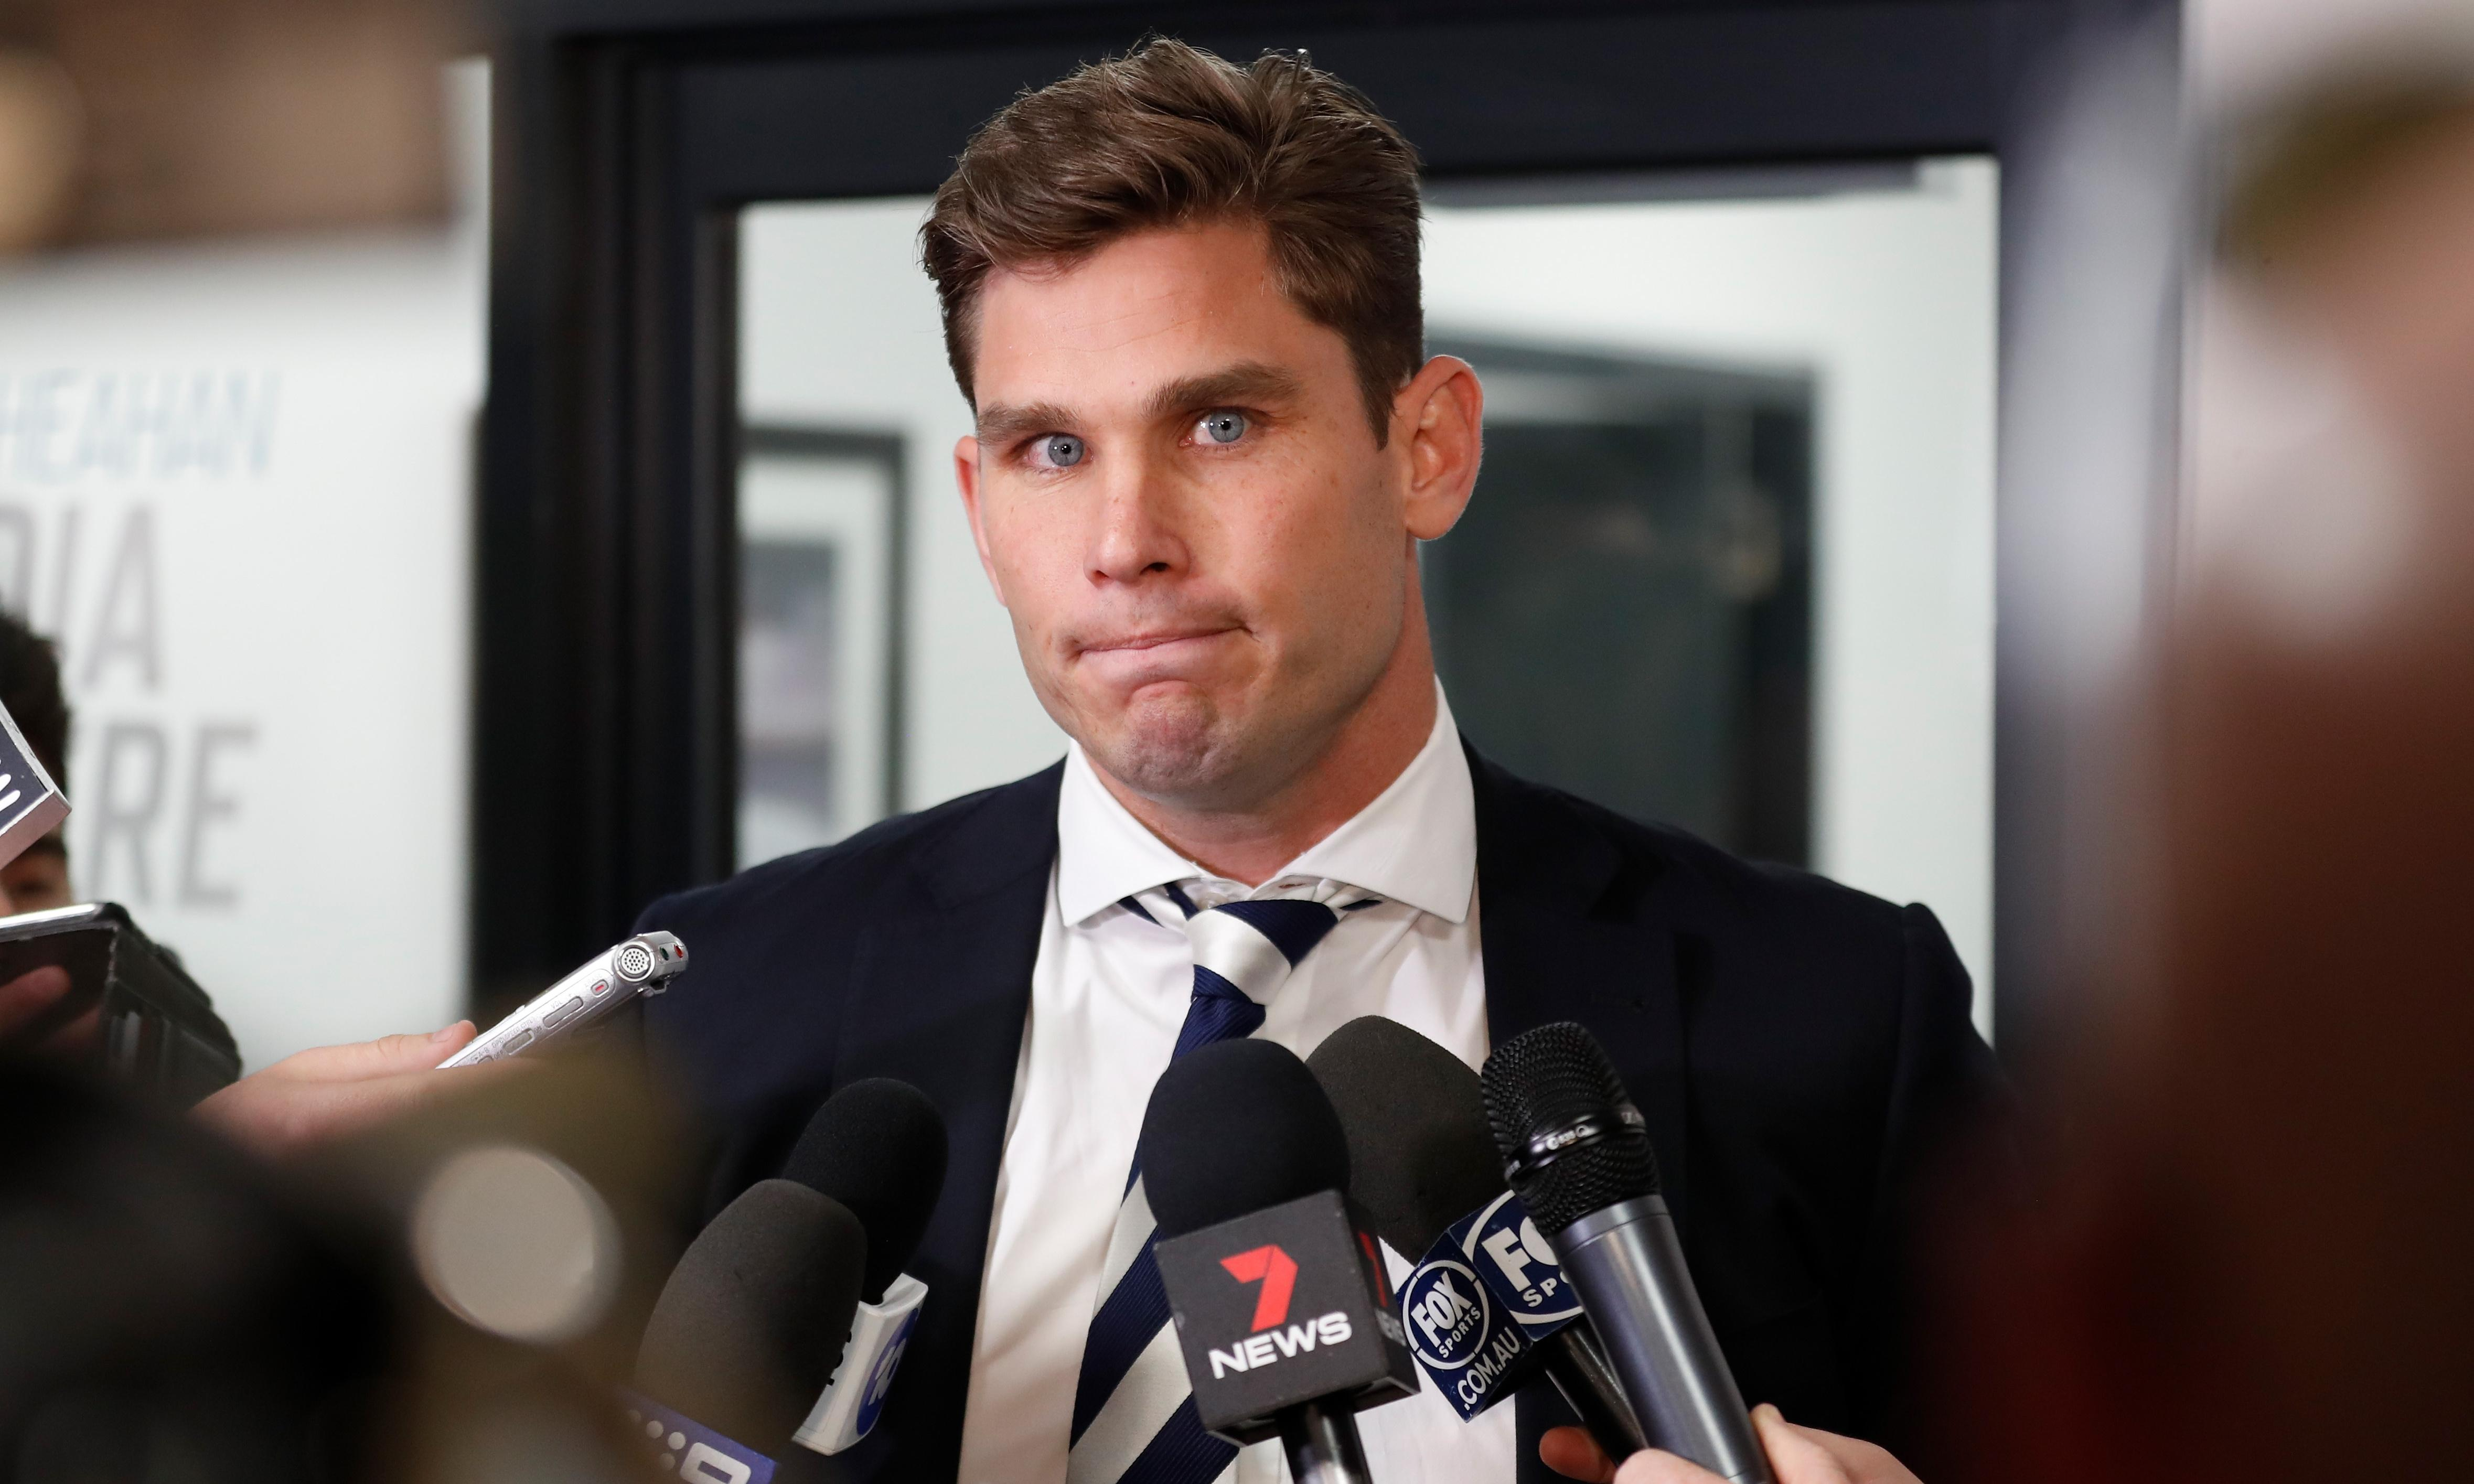 Geelong coach admits Tom Hawkins has 'issue' with striking after AFL ban upheld